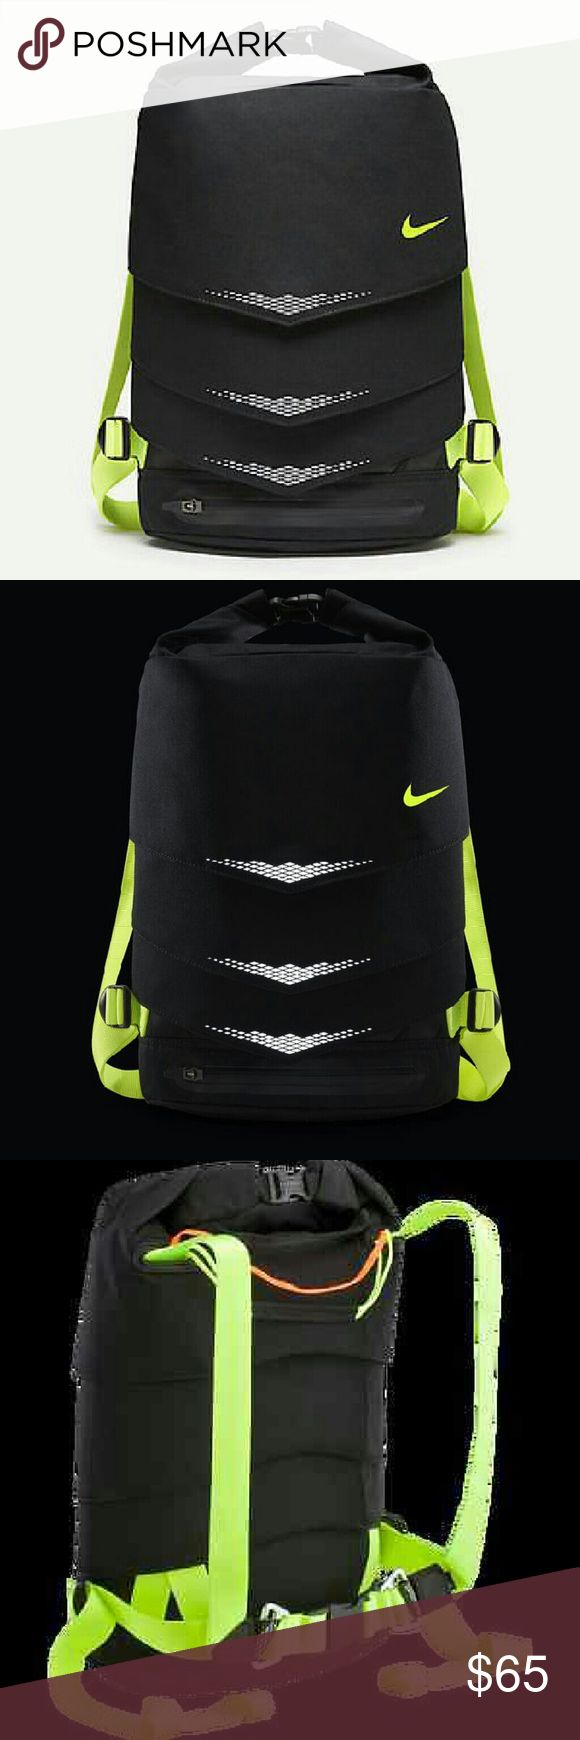 Nwt Nike MOG Bolt running backpack This is a new black with reflectors Nike MOG Bolt running backpack the dimensions are 24 in height 10 in width 7 in diameter Nike Bags Backpacks